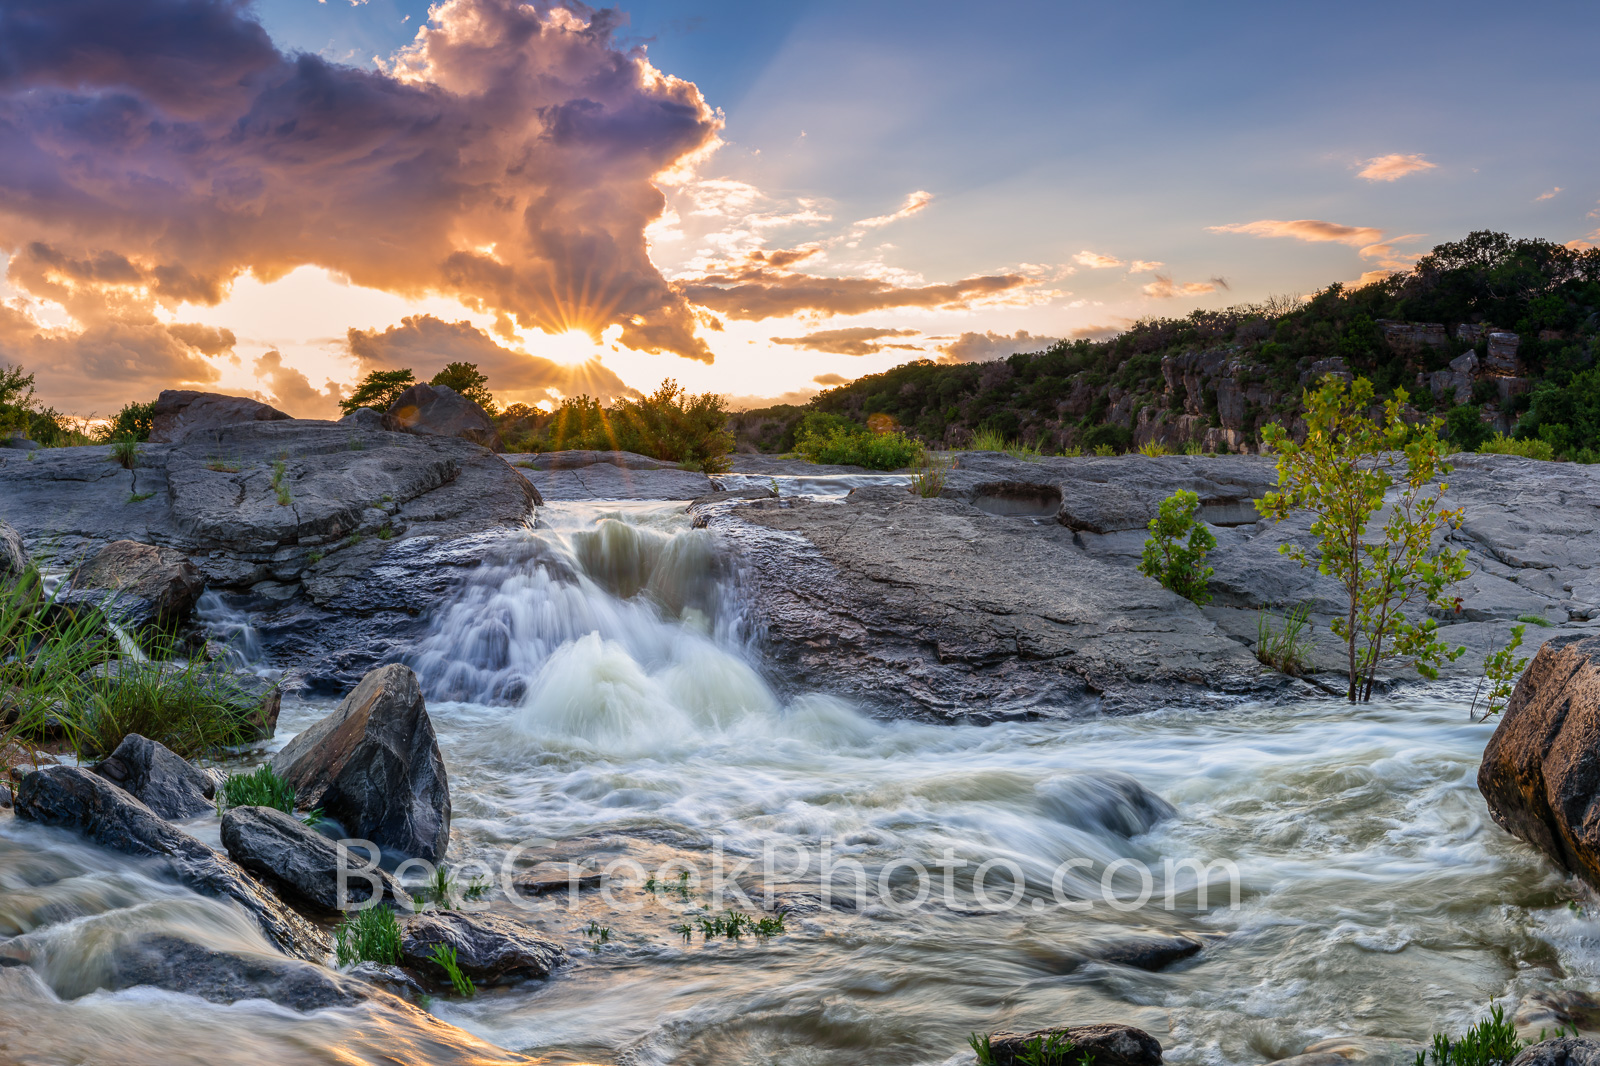 Pedernales Falls - We have had an excess of rain this spring and June was no exception so a trip to the pedernales river was...